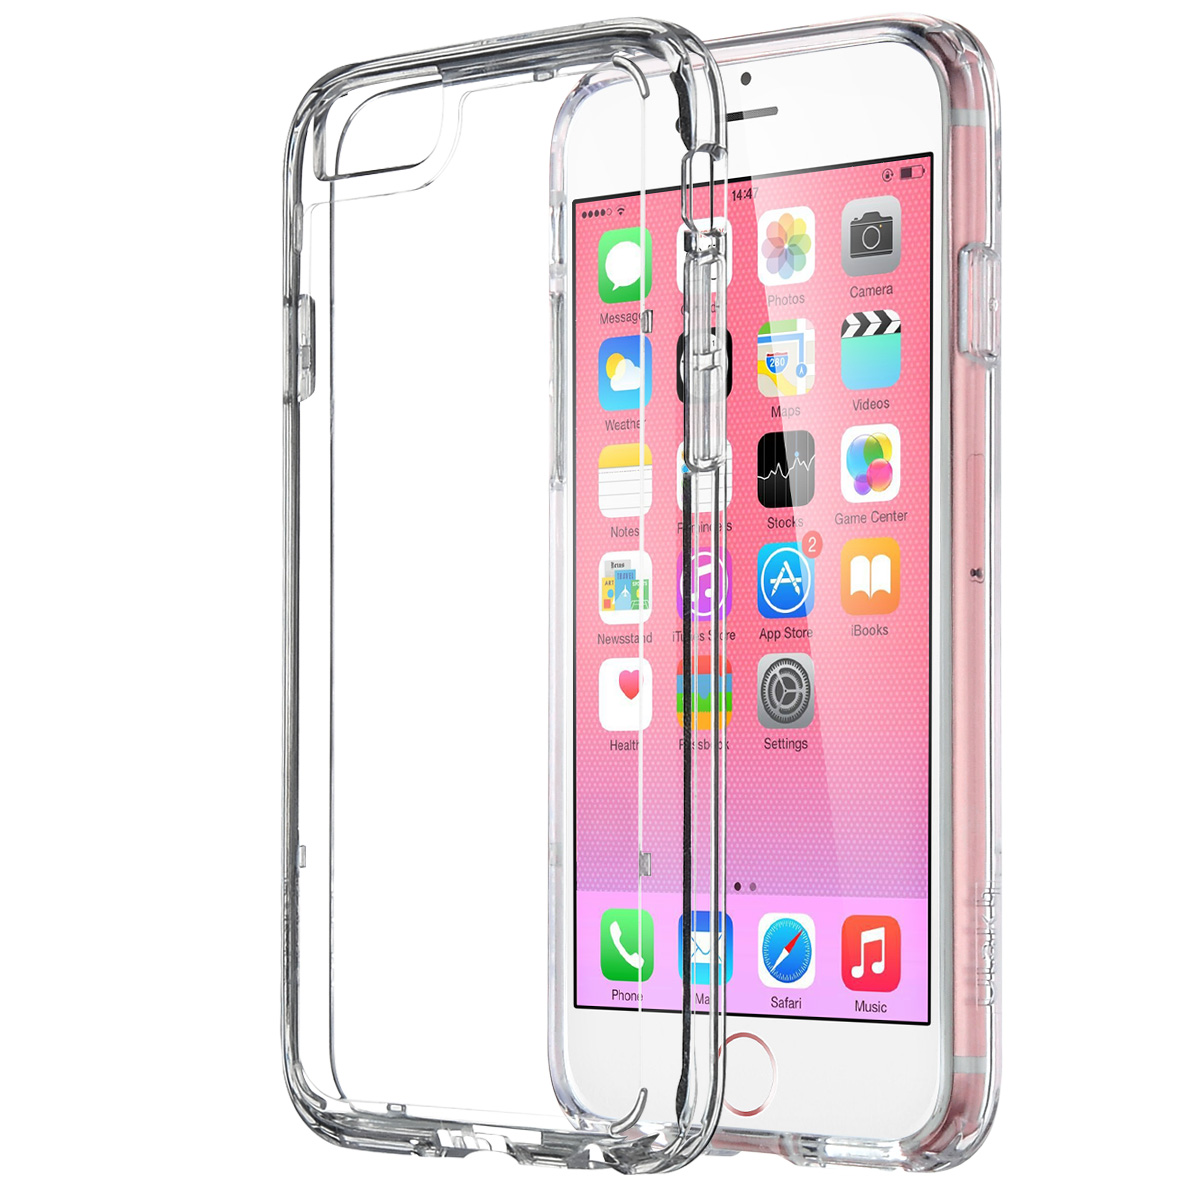 Apple iPhone 6 6S Plus 5.5 Case, ULAK [CLEAR SLIM] iPhone 6 Plus Clear Case Cover Bumber Hard for Apple iPhone 6 6S Plus 5.5 Inch